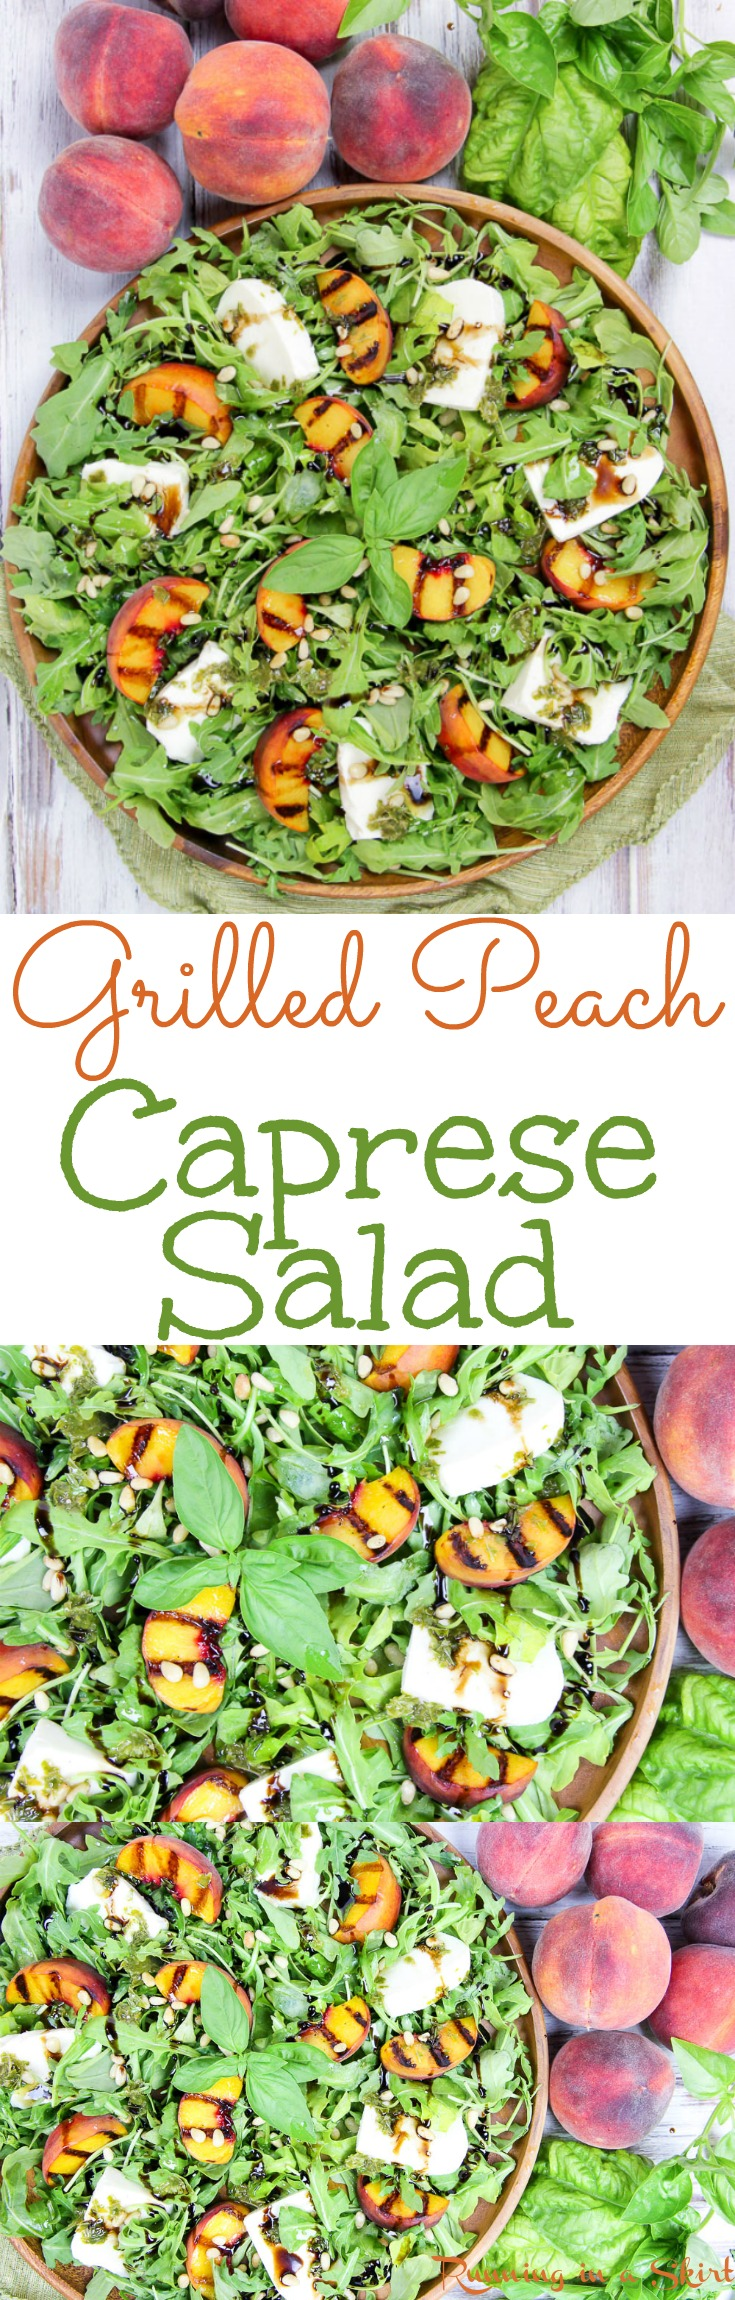 Caprese Grilled Peach Salad recipe. The best summer salad with peaches, arugula, fresh mozzarella cheese, pine nuts, homemade basil dressing and a balsamic glaze. So delicious! / Running in a Skirt via @juliewunder